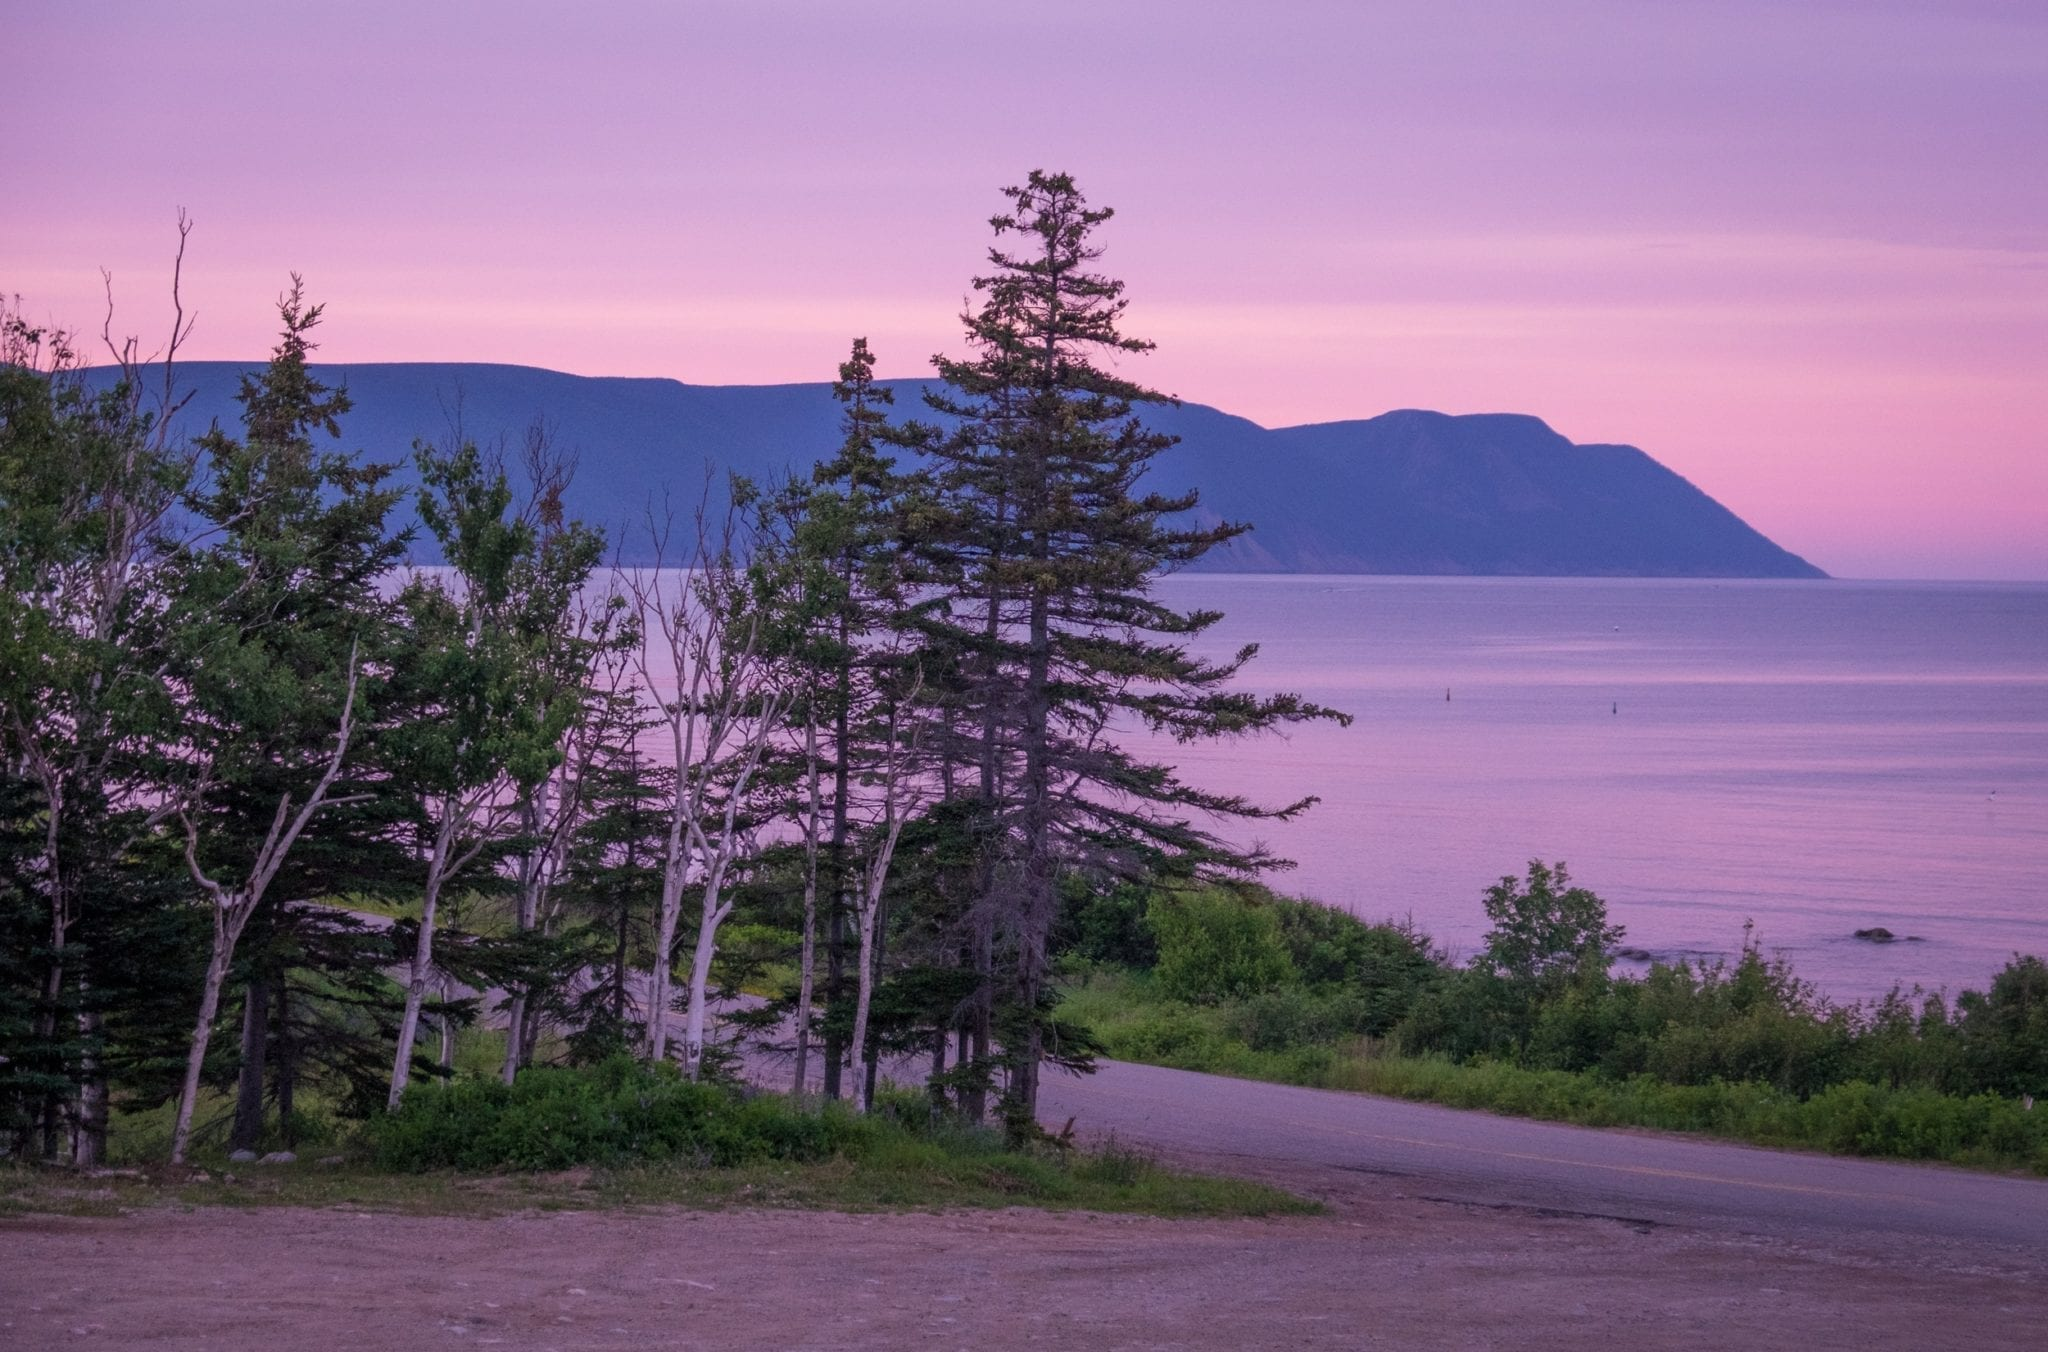 A bright pink and purple sunset over purple mountains. Evergreen trees in the foreground.